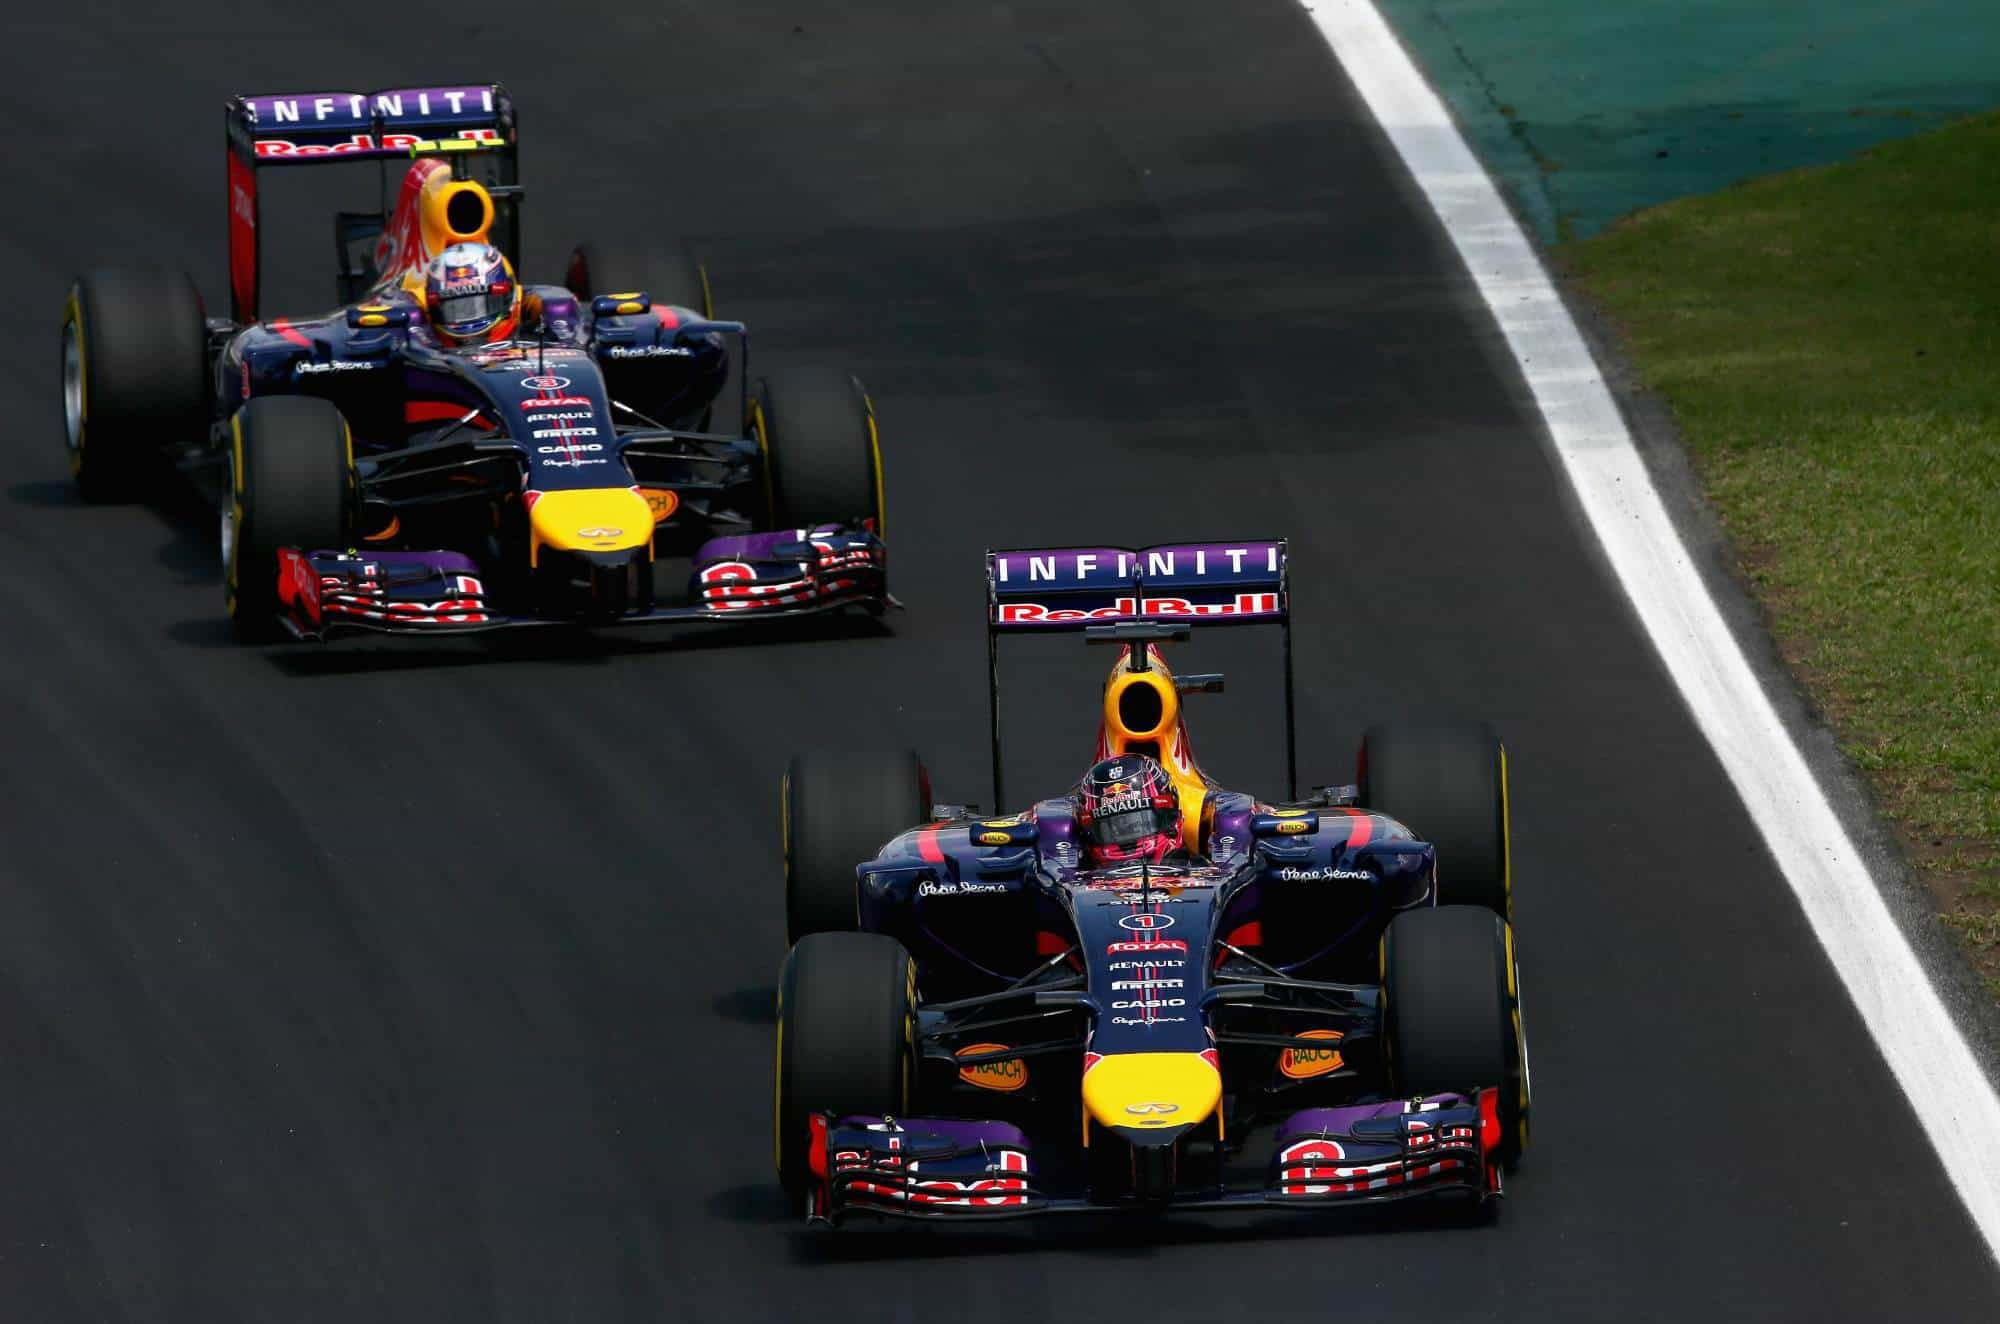 Vettel leads Ricciardo Red Bull RB10 Brazilian GP F1 2014 Photo Red Bull